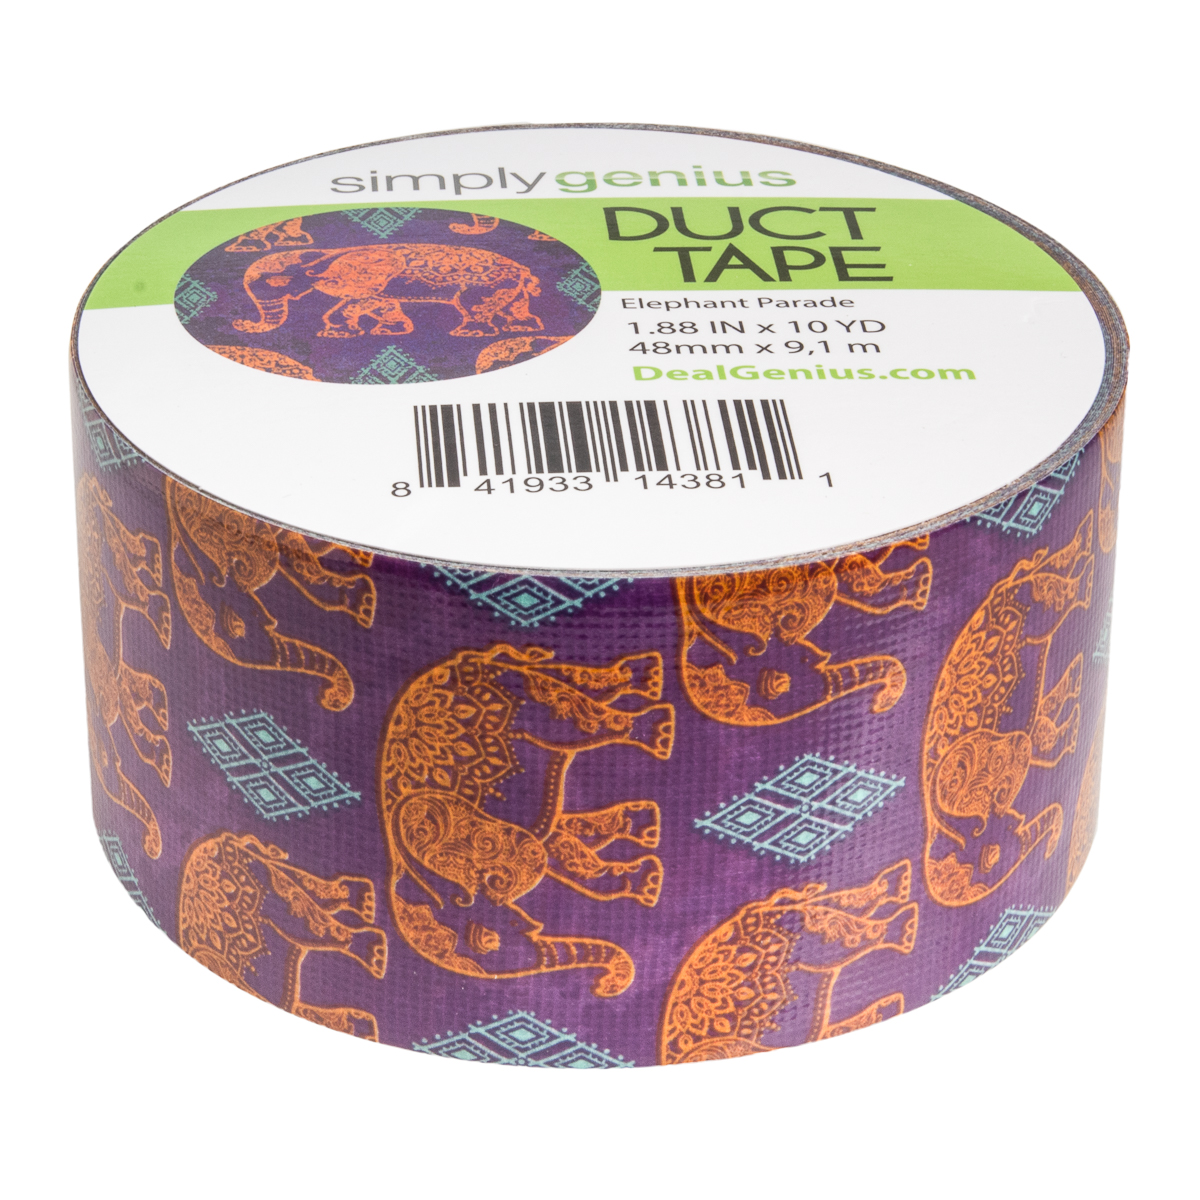 Simply-Genius-Duct-Tape-Roll-Colors-Patterns-Craft-Supplies-Colored-amp-Patterned thumbnail 52